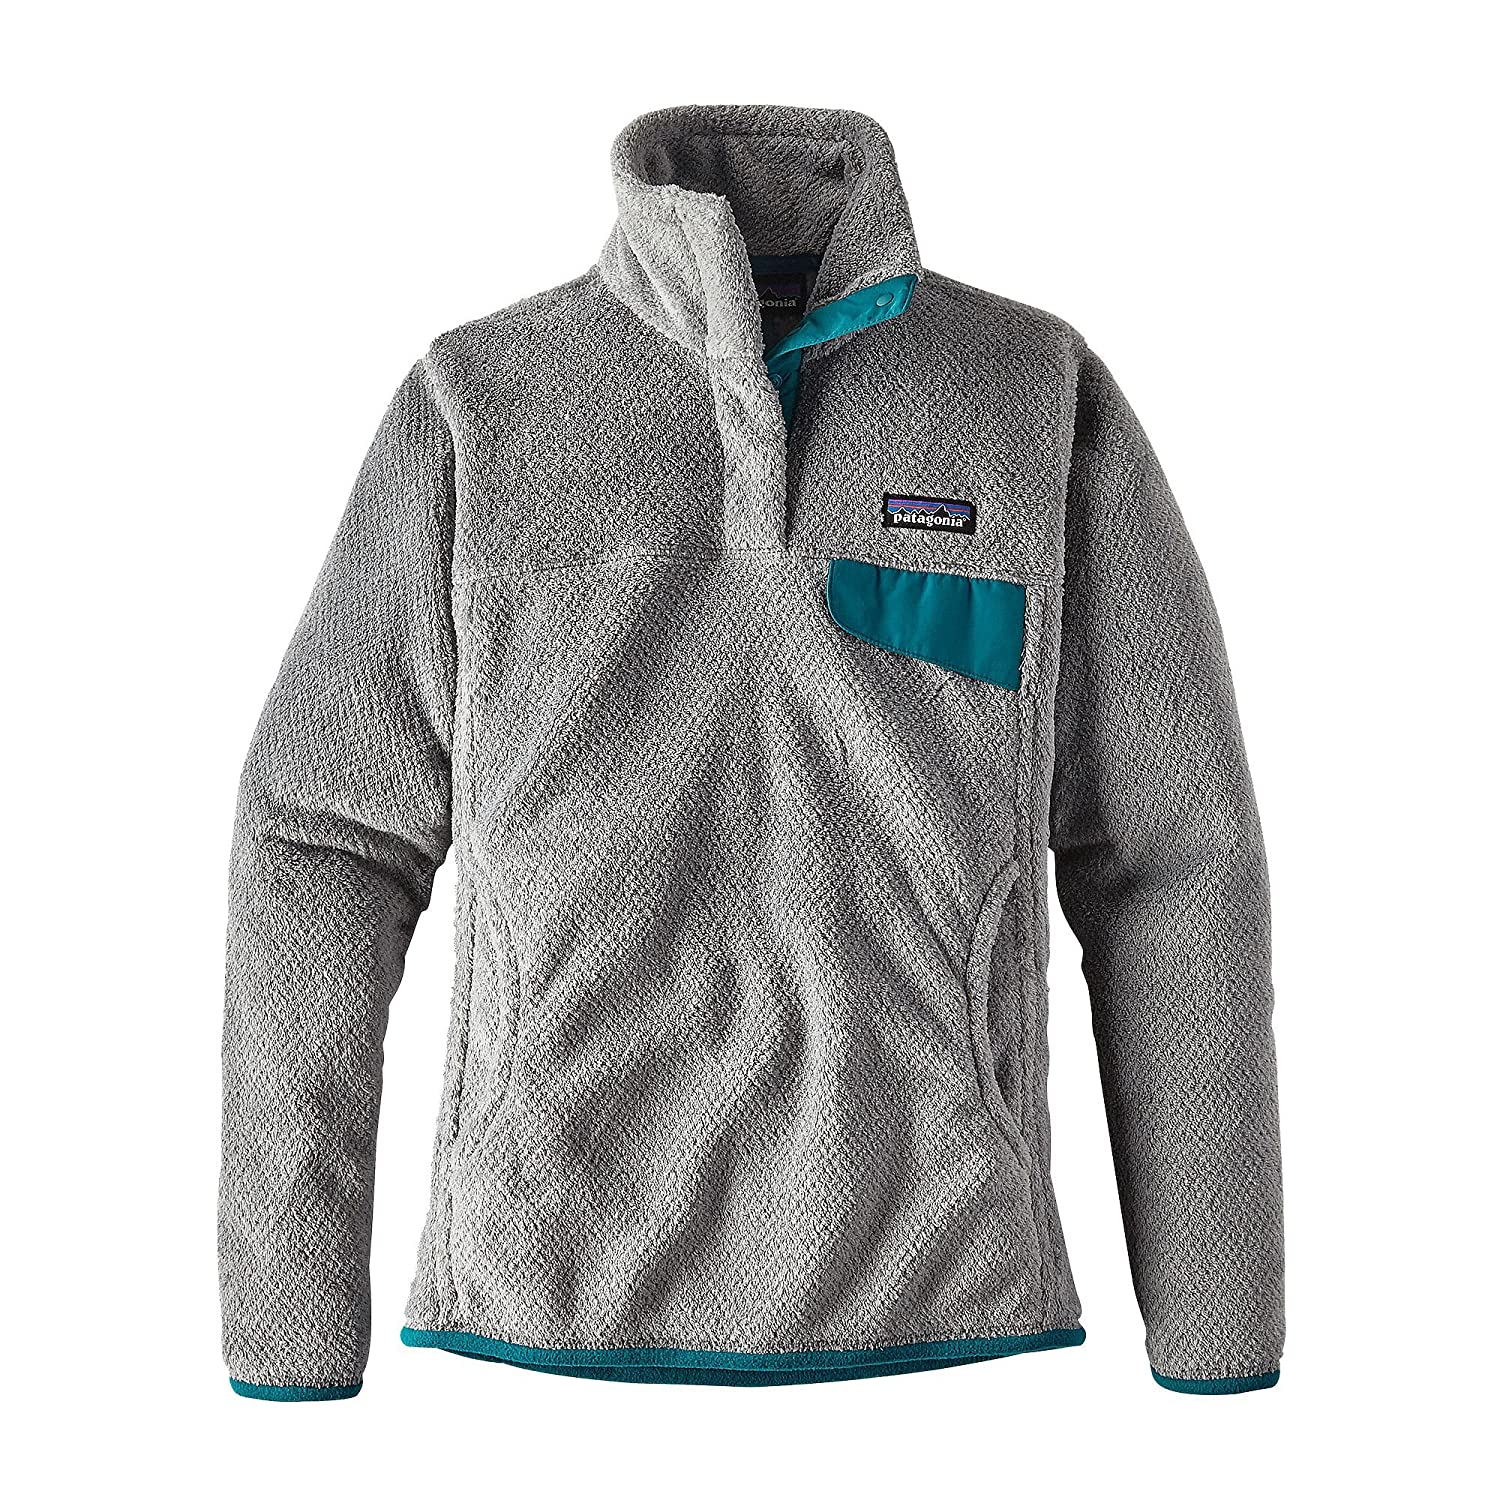 patagonia(パタゴニア) ウィメンズリツールスナップTプルオーバー Ws Re-Tool Snap-T P/O 25442 B073XSVPNM Small|Tailored GreyNickel X-dye W/ Elwha Blue Tailored GreyNickel X-dye W/ Elwha Blue Small